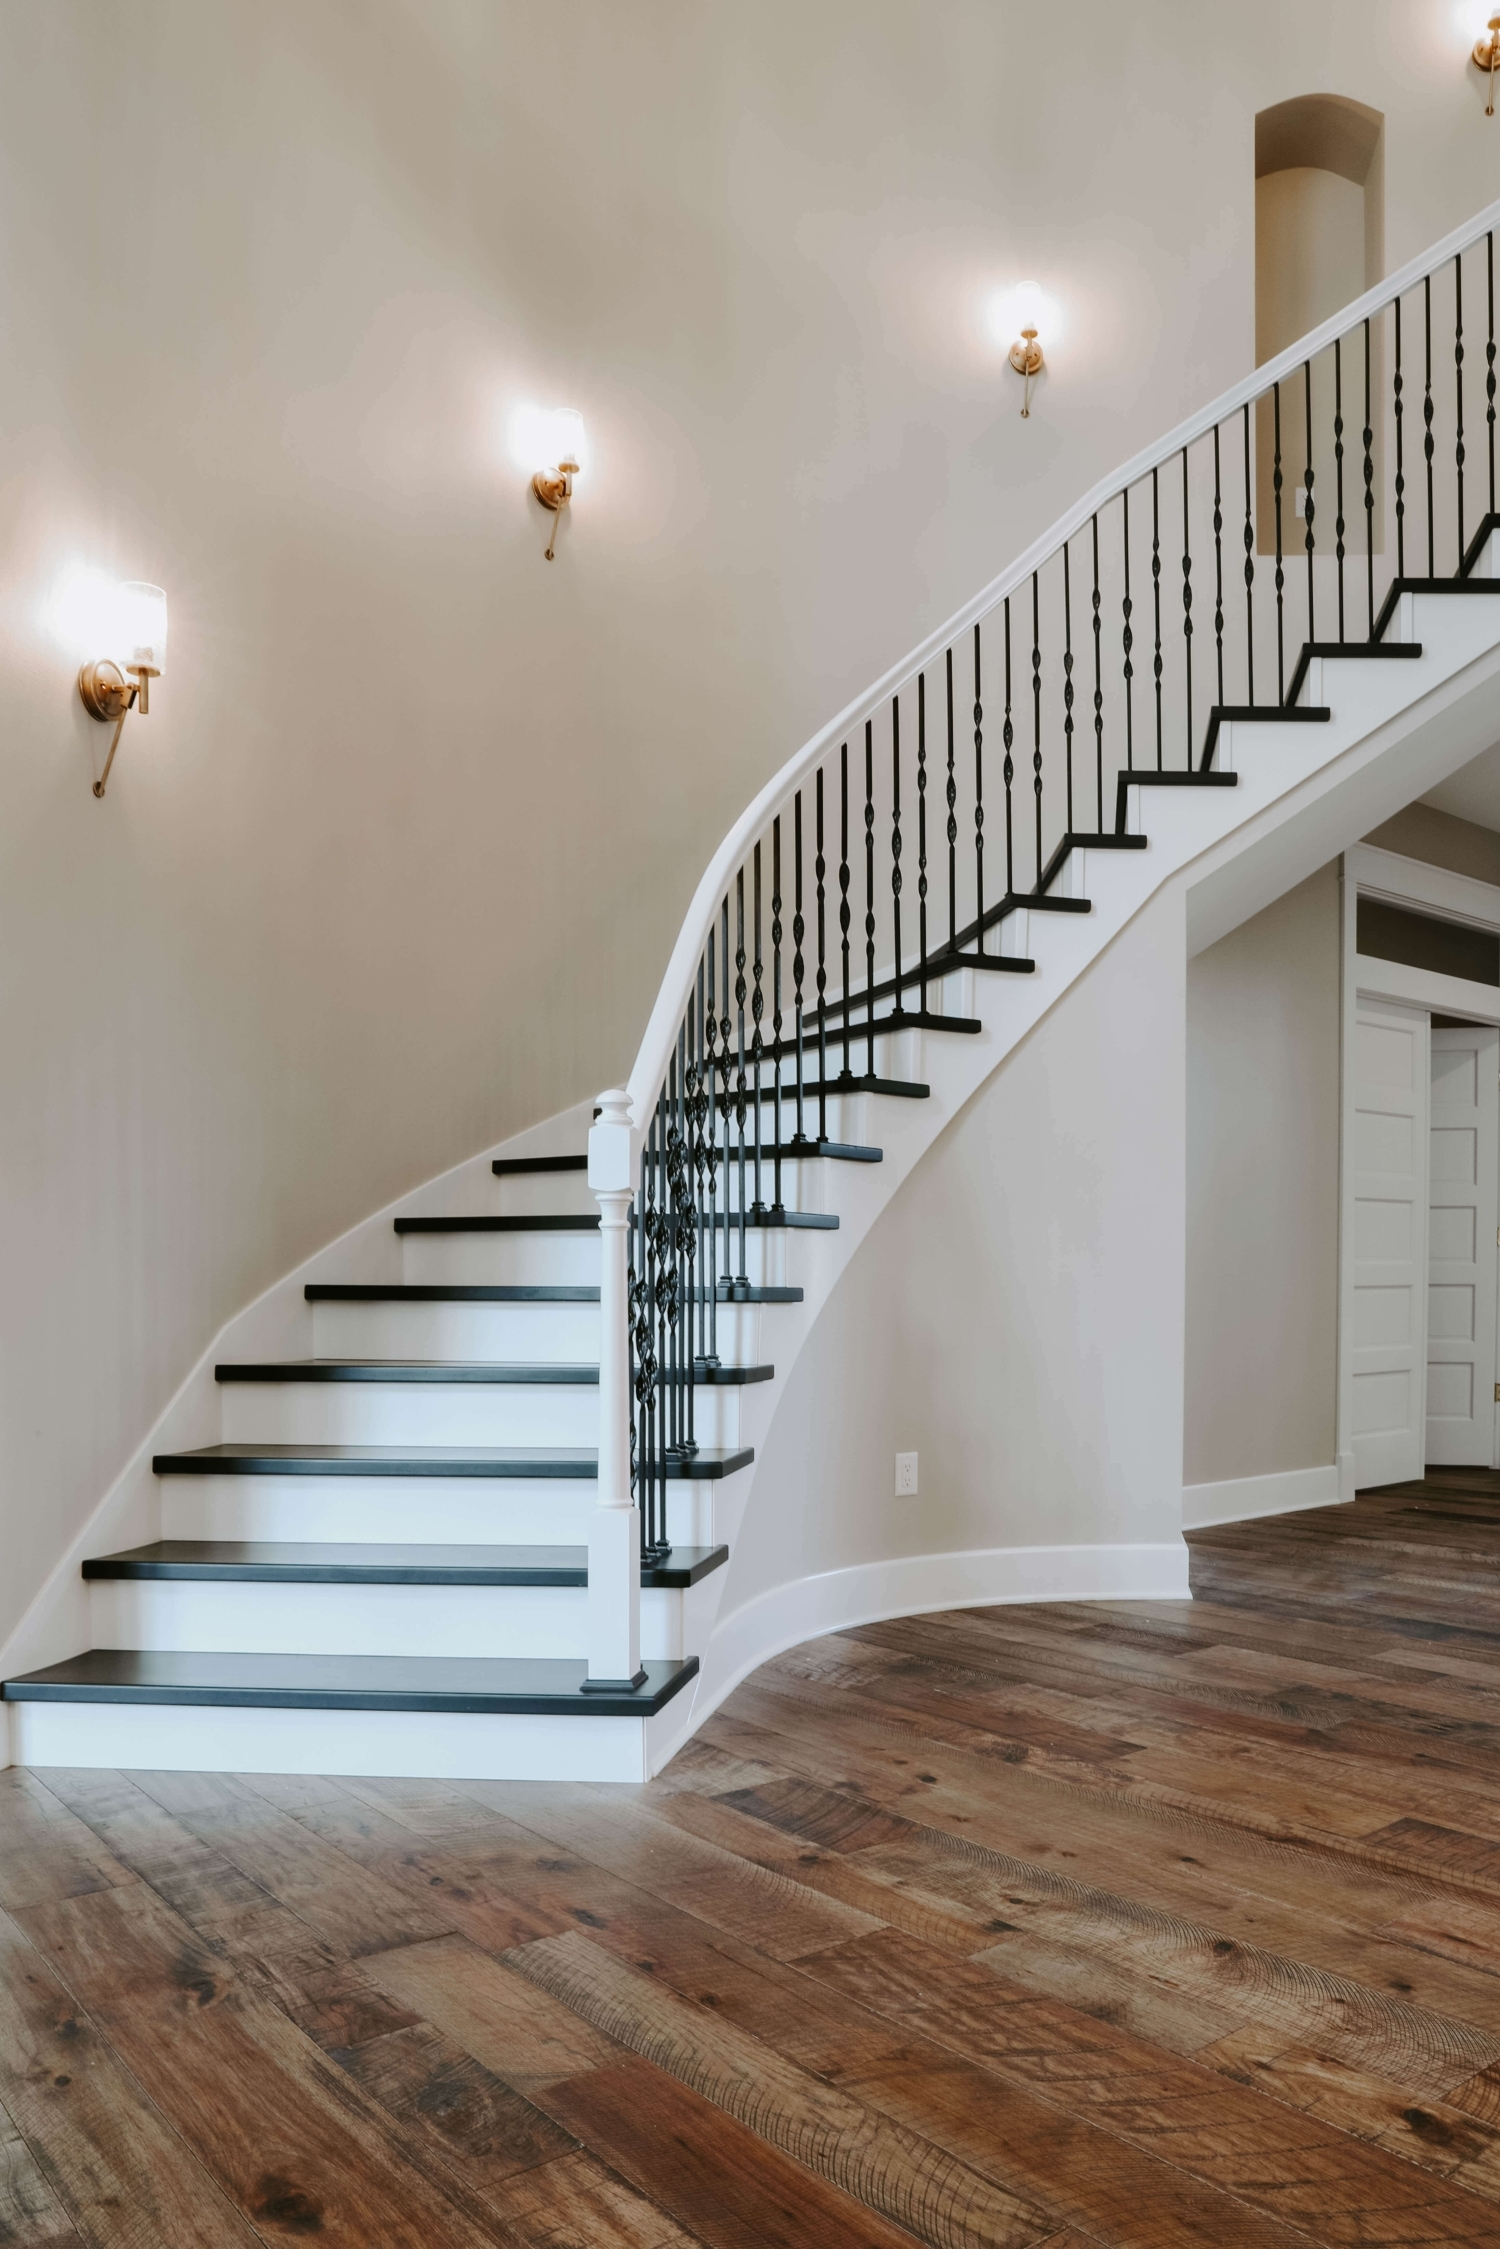 Fitts Industries Creating Stair Parts For Today S Stylish Home | Wood Handrail With Iron Balusters | Stairway | Wooden | Copper | Cast Iron | Landing